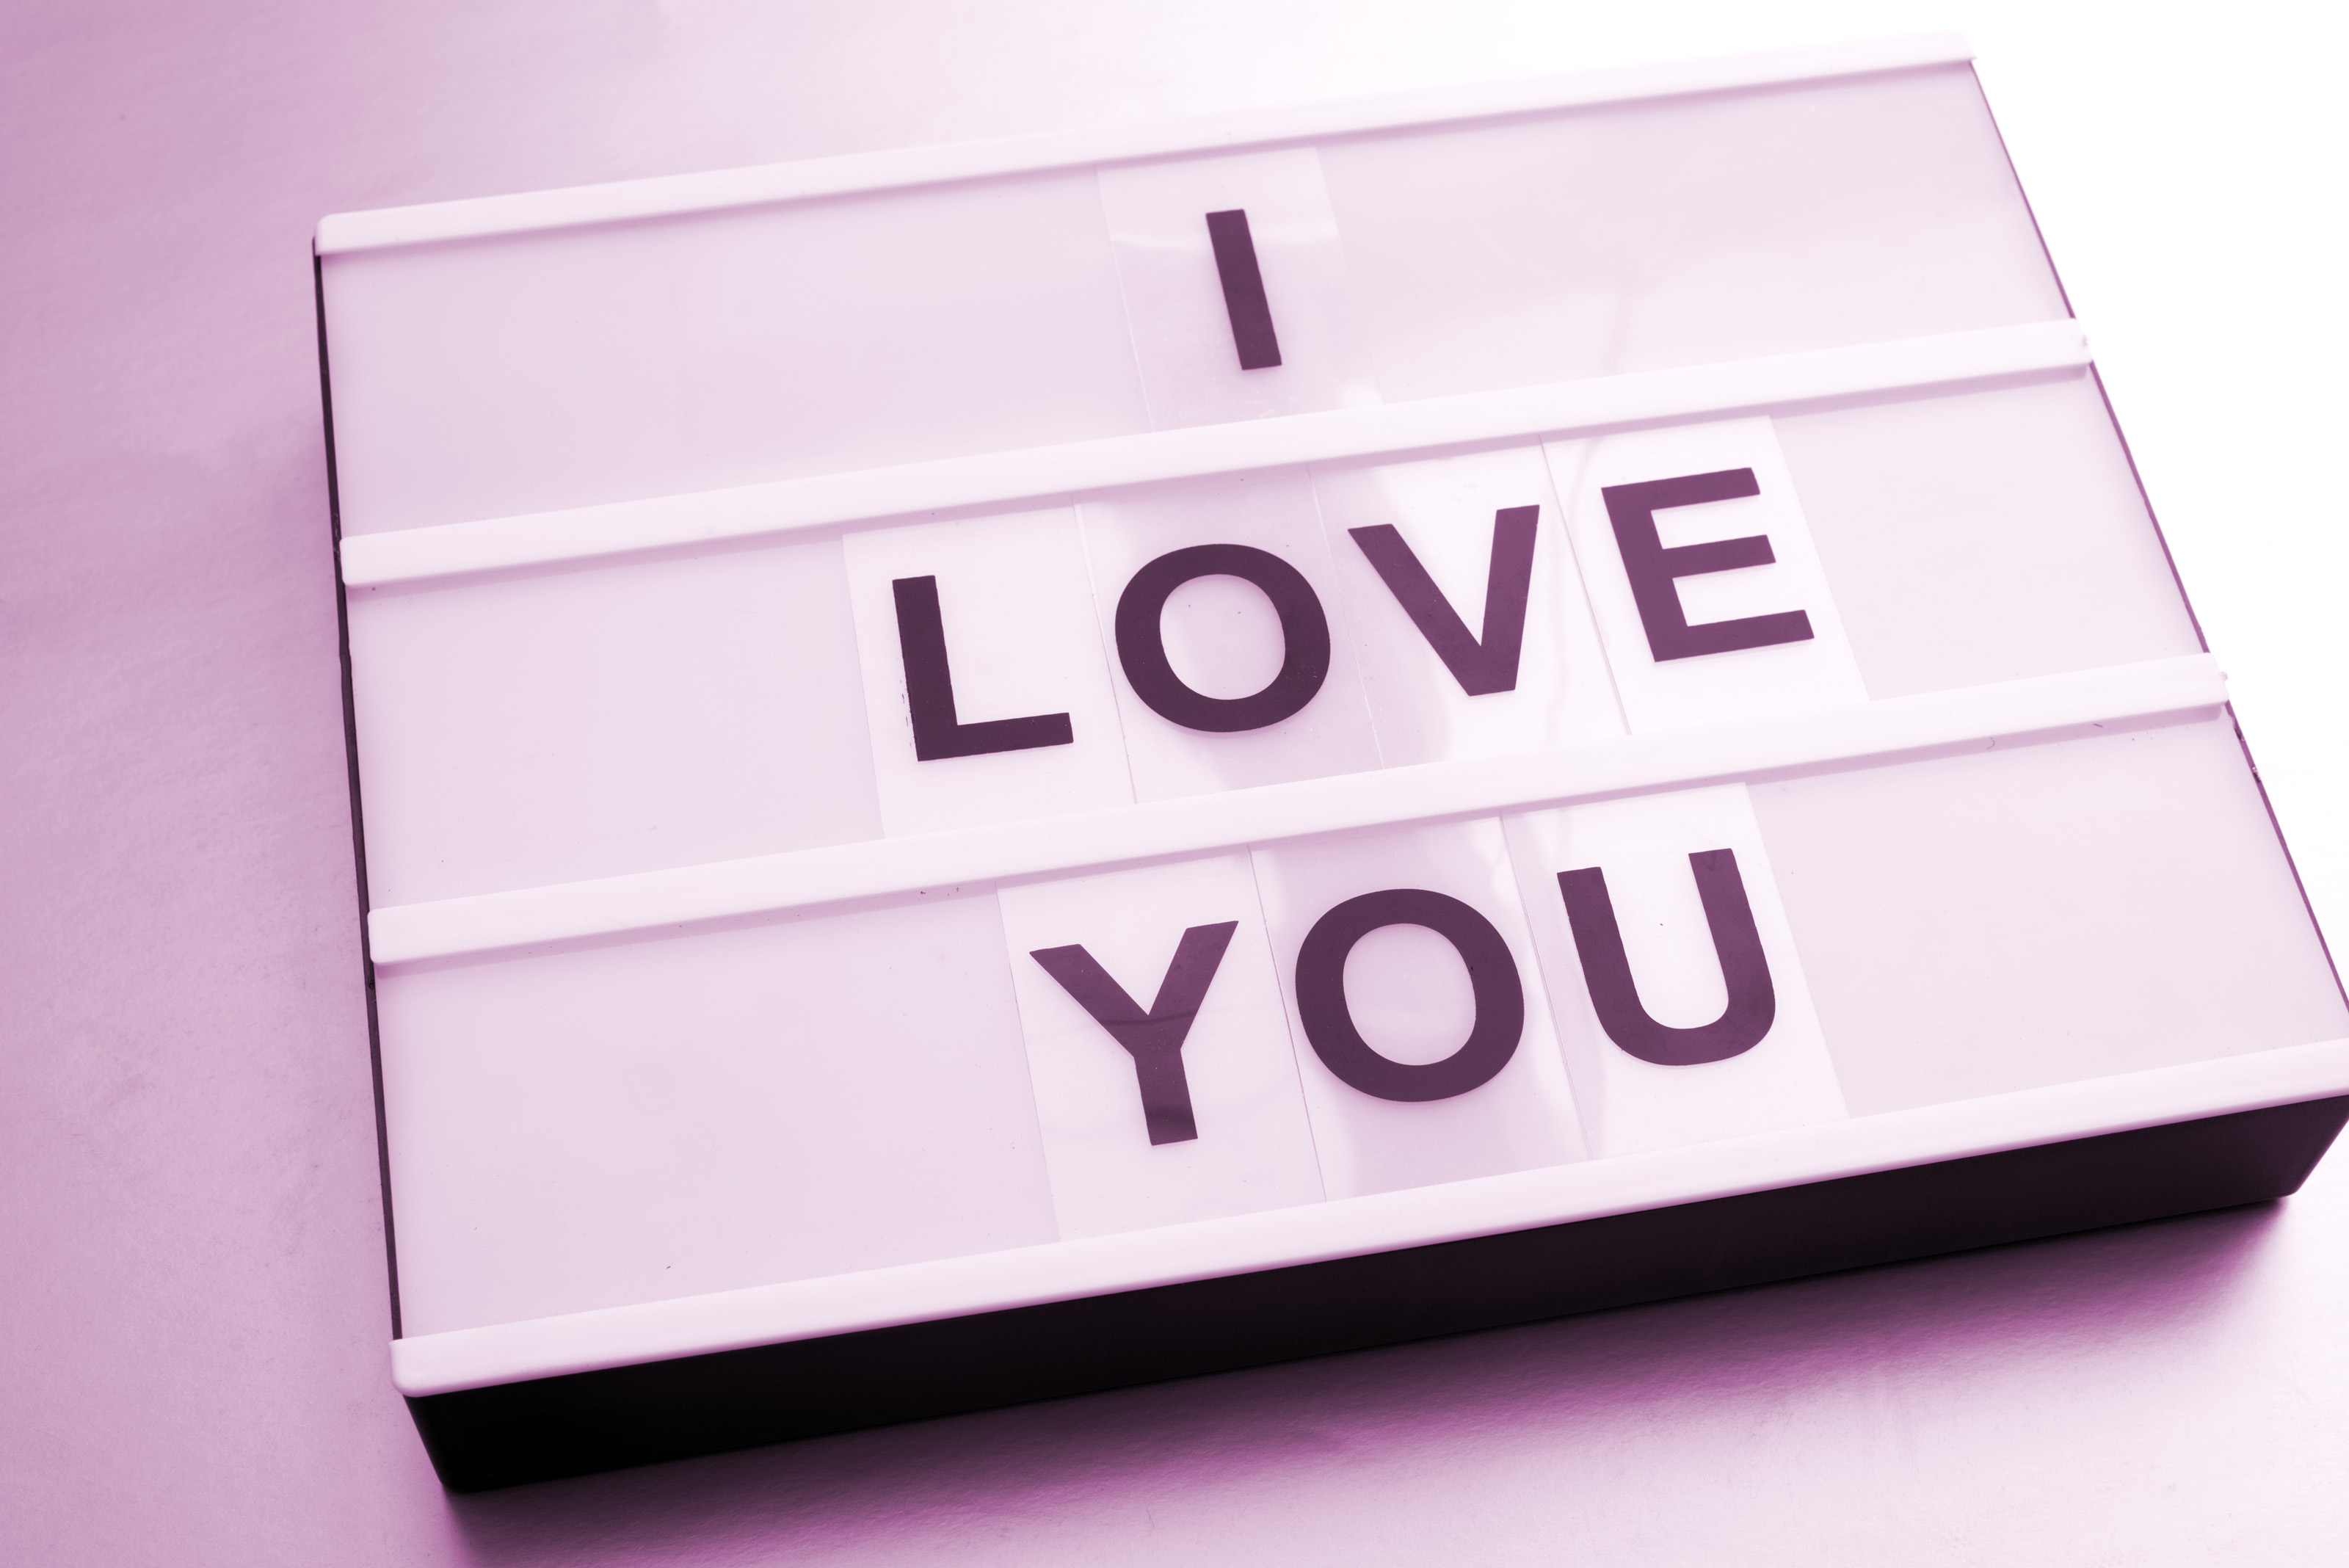 Free Stock Photo 13502 Changeable I Love You sign | freeimageslive